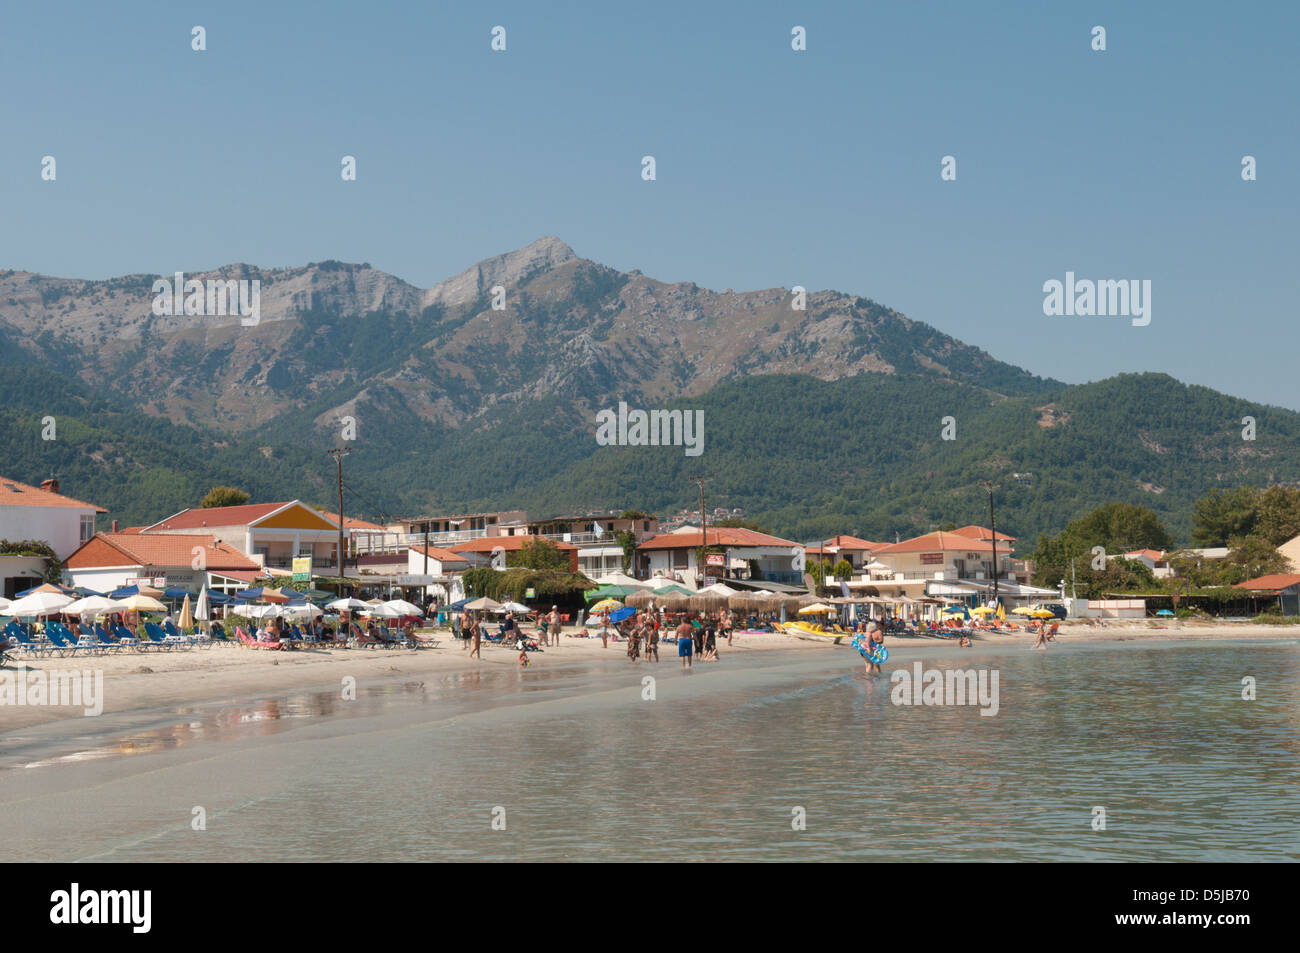 The Golden Coast The beach and resort hotels along the shore Stock Photo